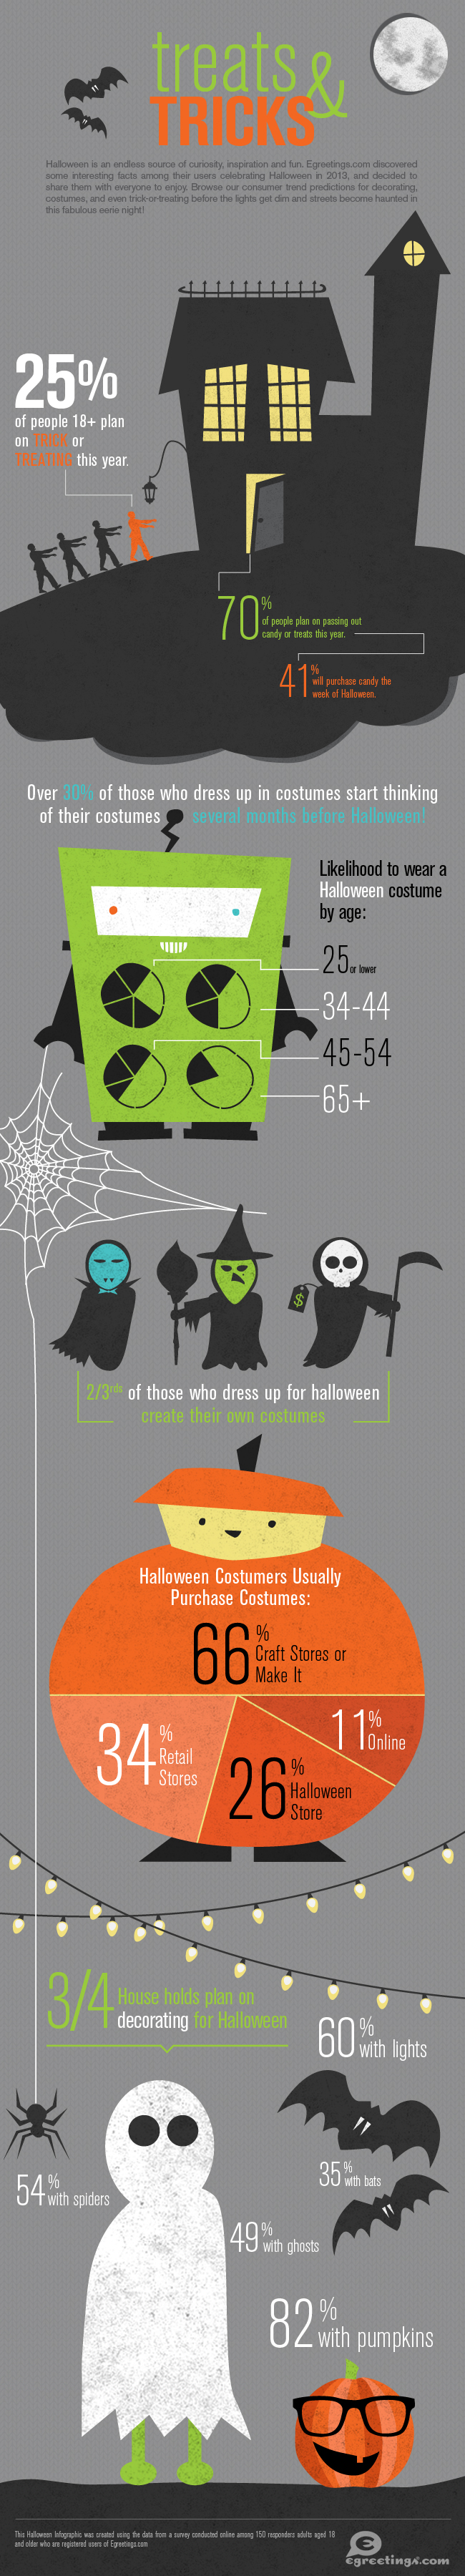 interesting-facts-about-halloween-you-should-know